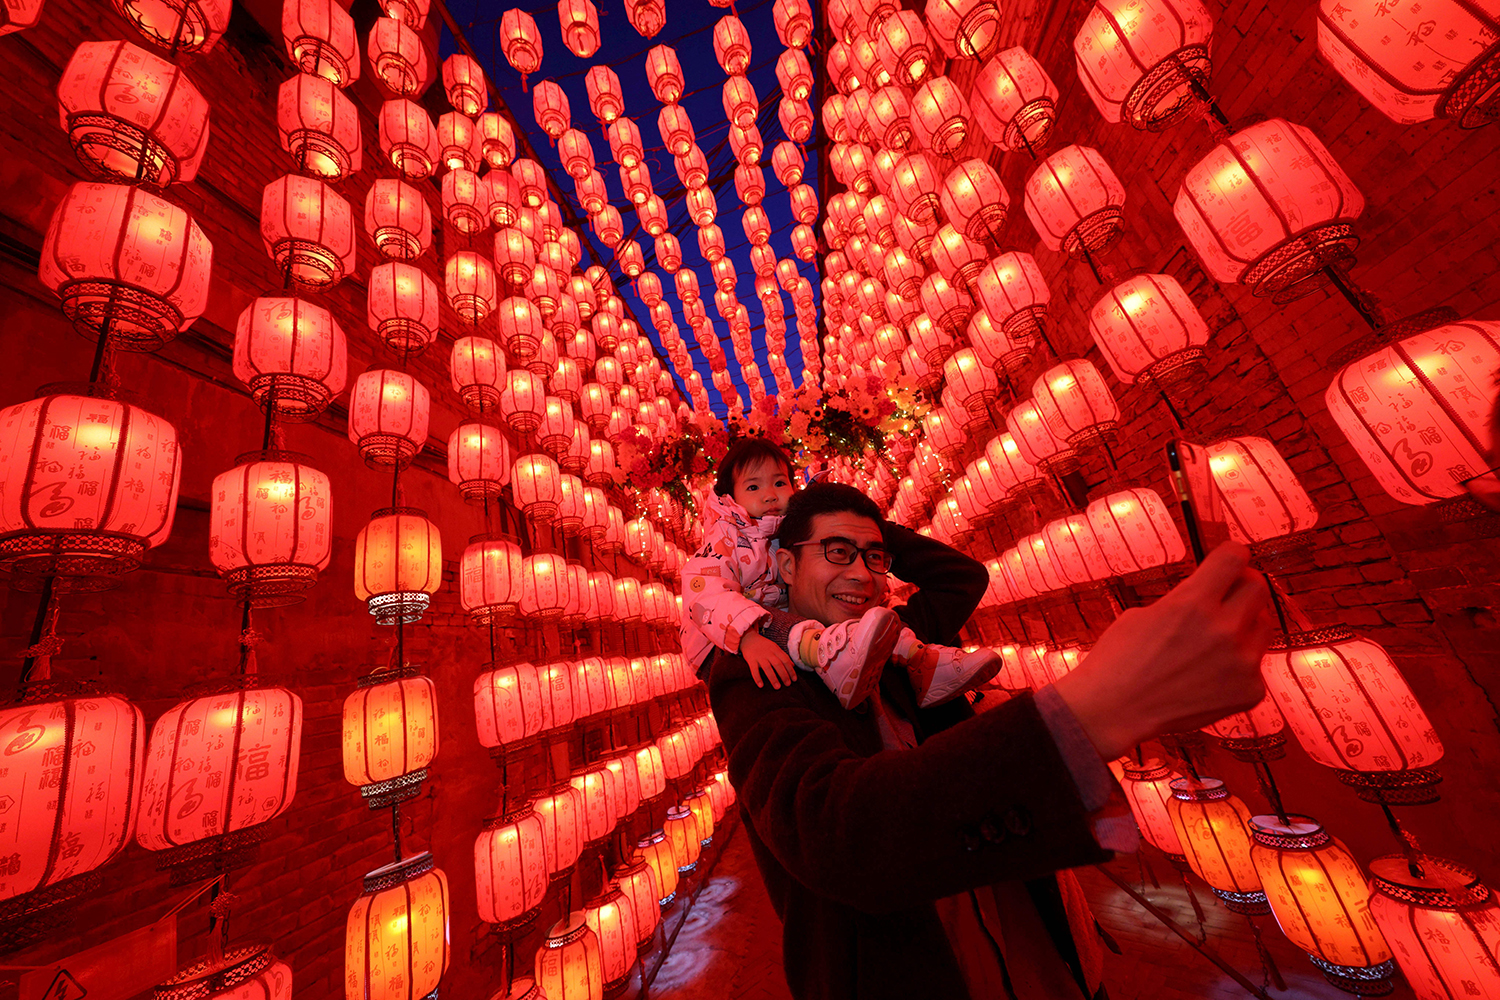 People take photos next to a display of lanterns during the Lantern Festival, marking the end of the Lunar New Year celebrations in Taiyuan, China, on Feb. 26. STR/AFP via Getty Images